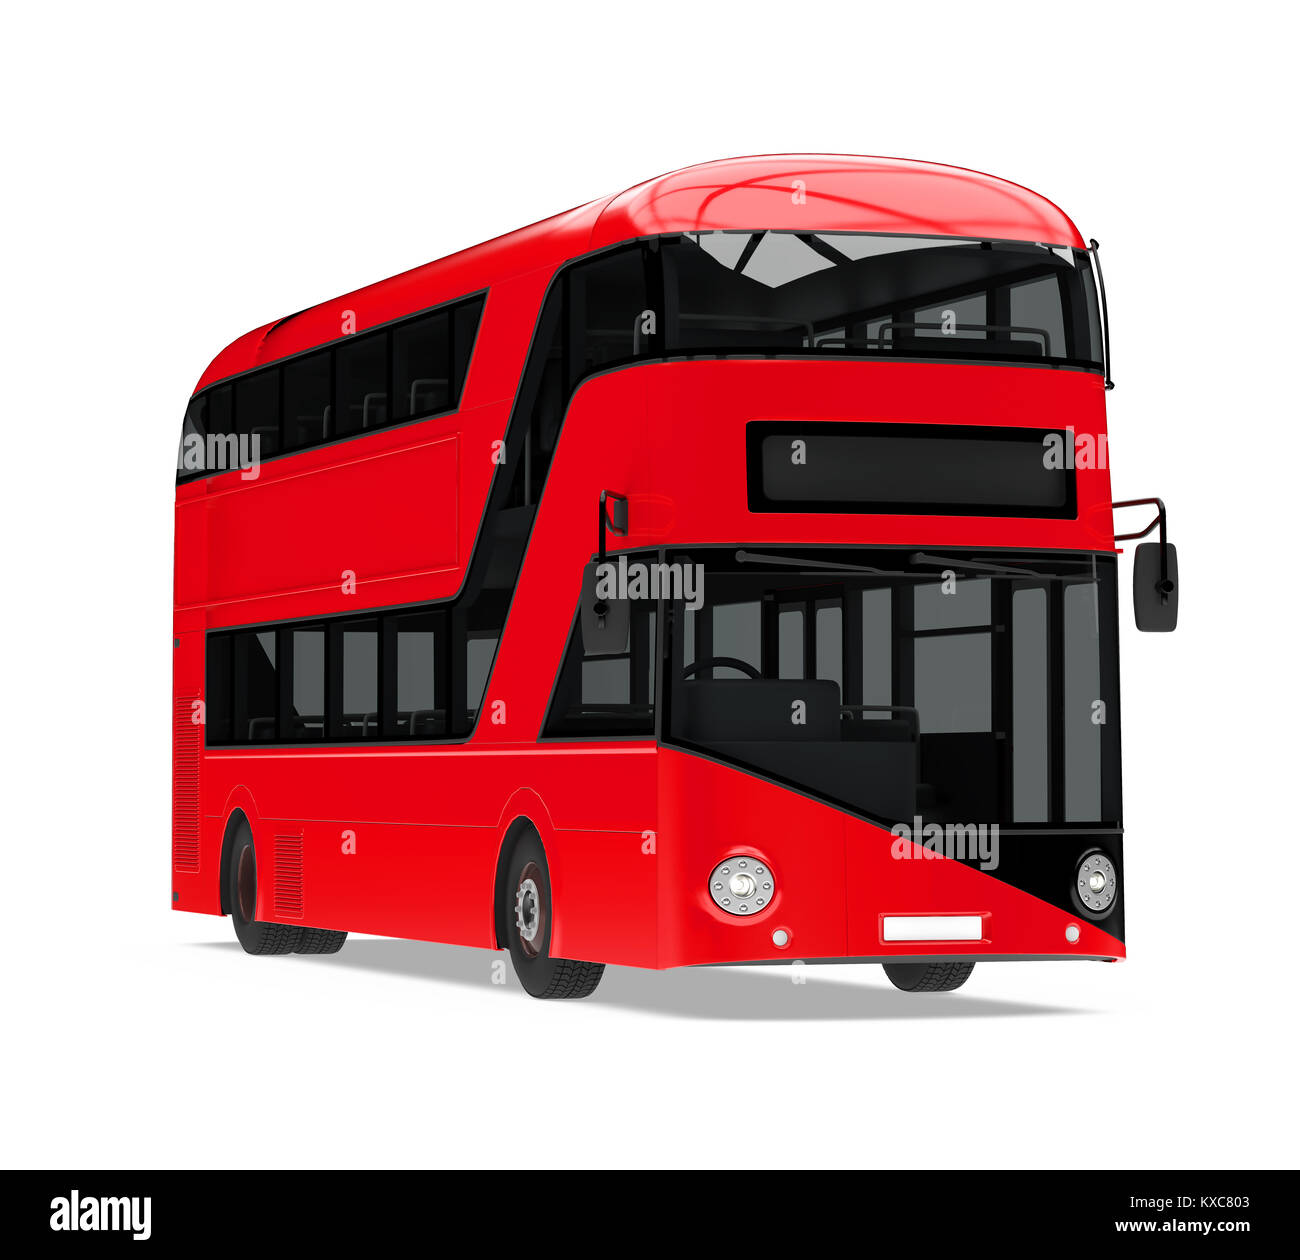 New London Double Decker Bus Isolated - Stock Image